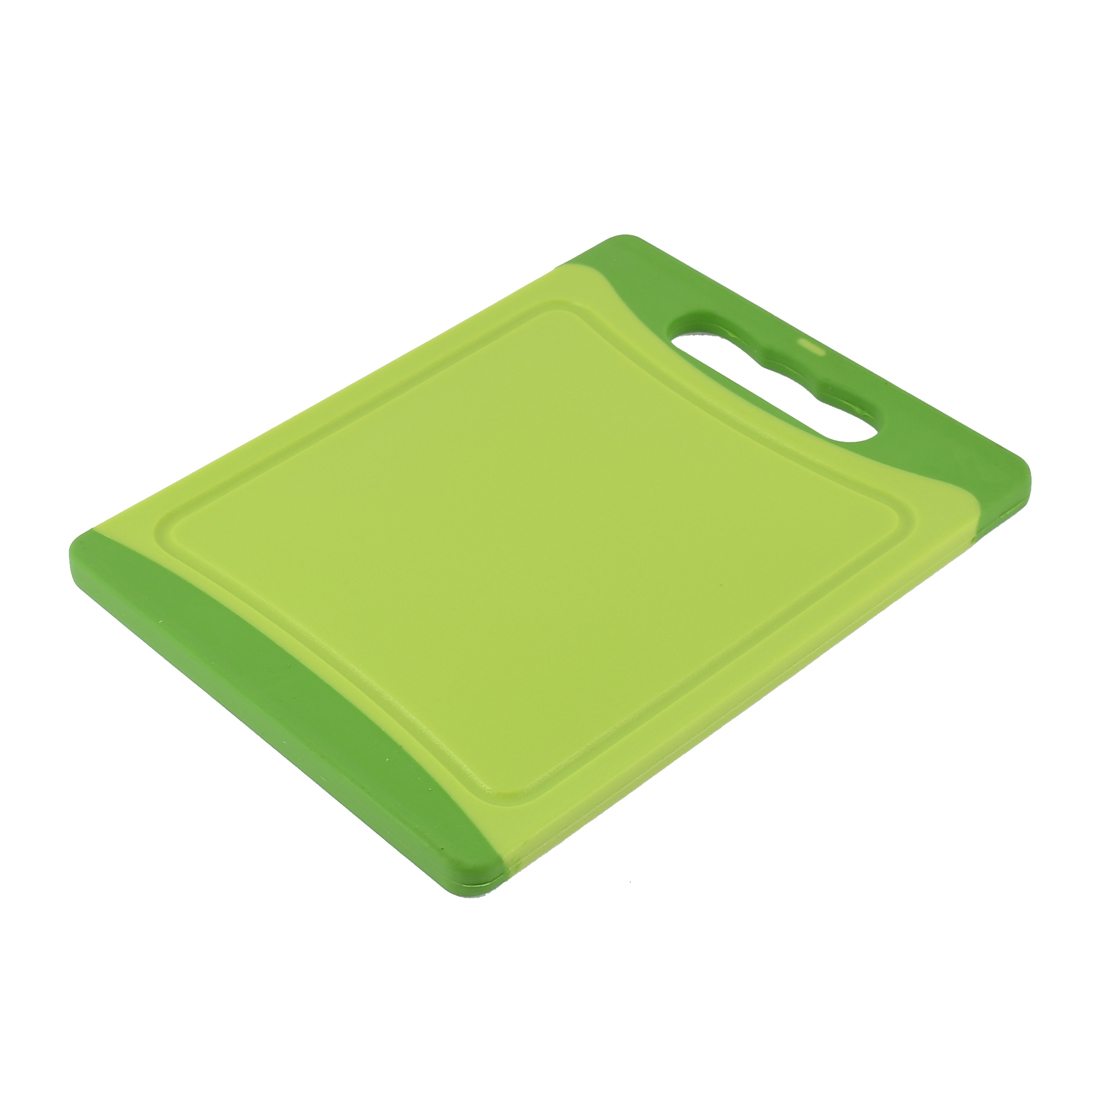 Kitchen Picnic Portable Nonslip Chopping Cutting Slicing Board Mat Green